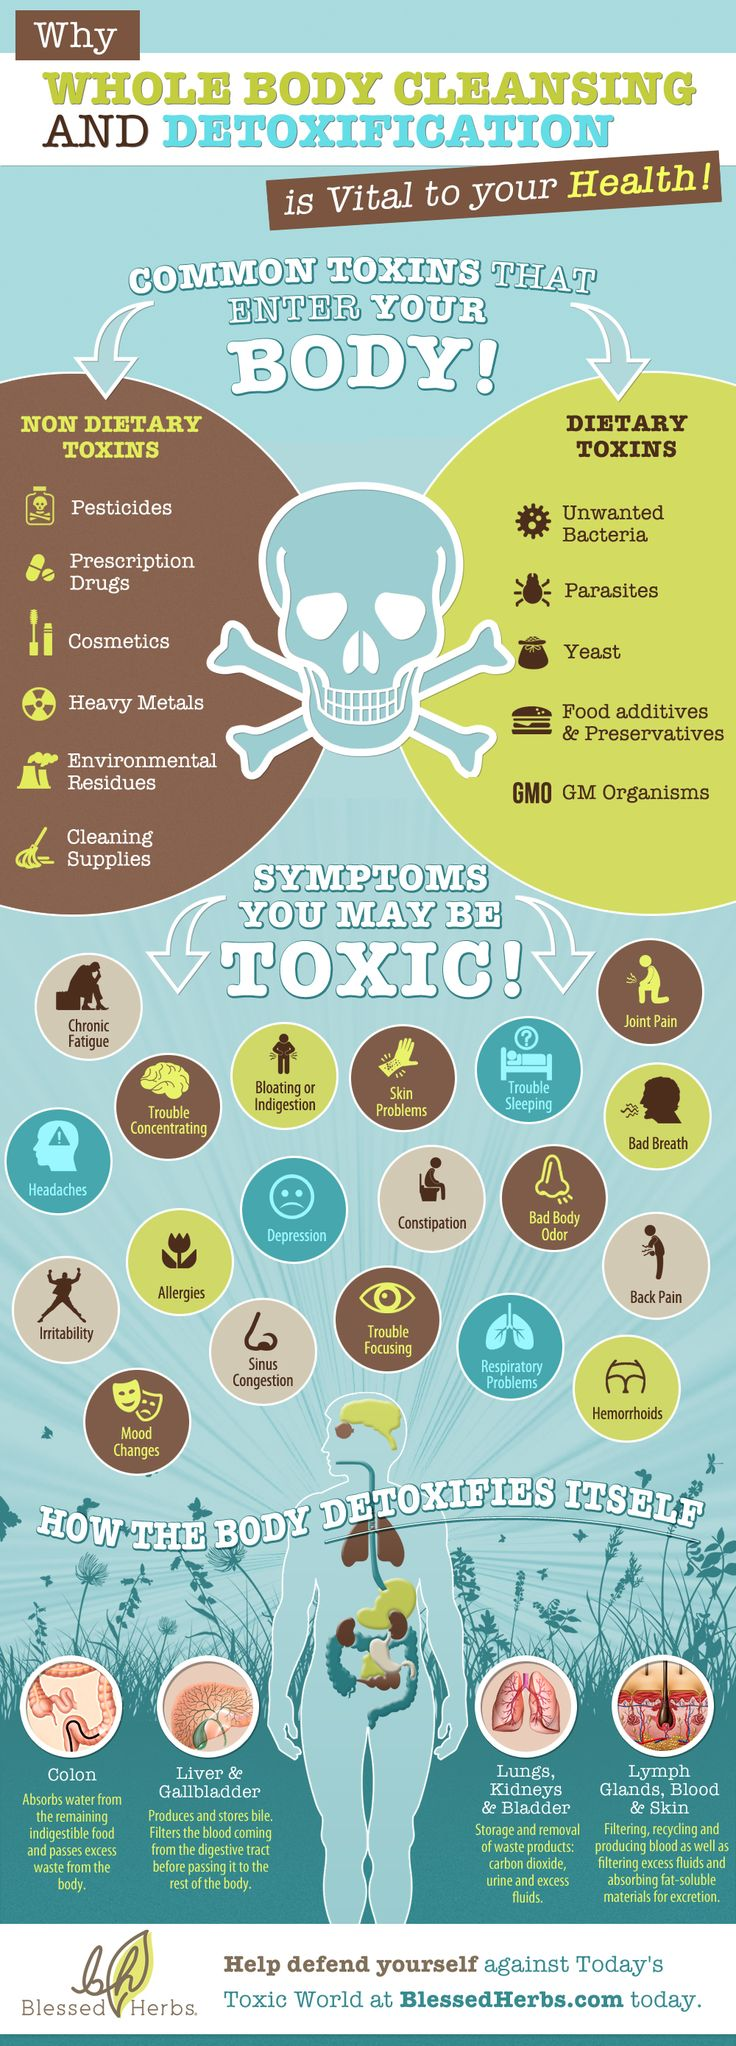 Identify common toxins that enter your body and symptoms you may be toxic + how the body detoxifies itself